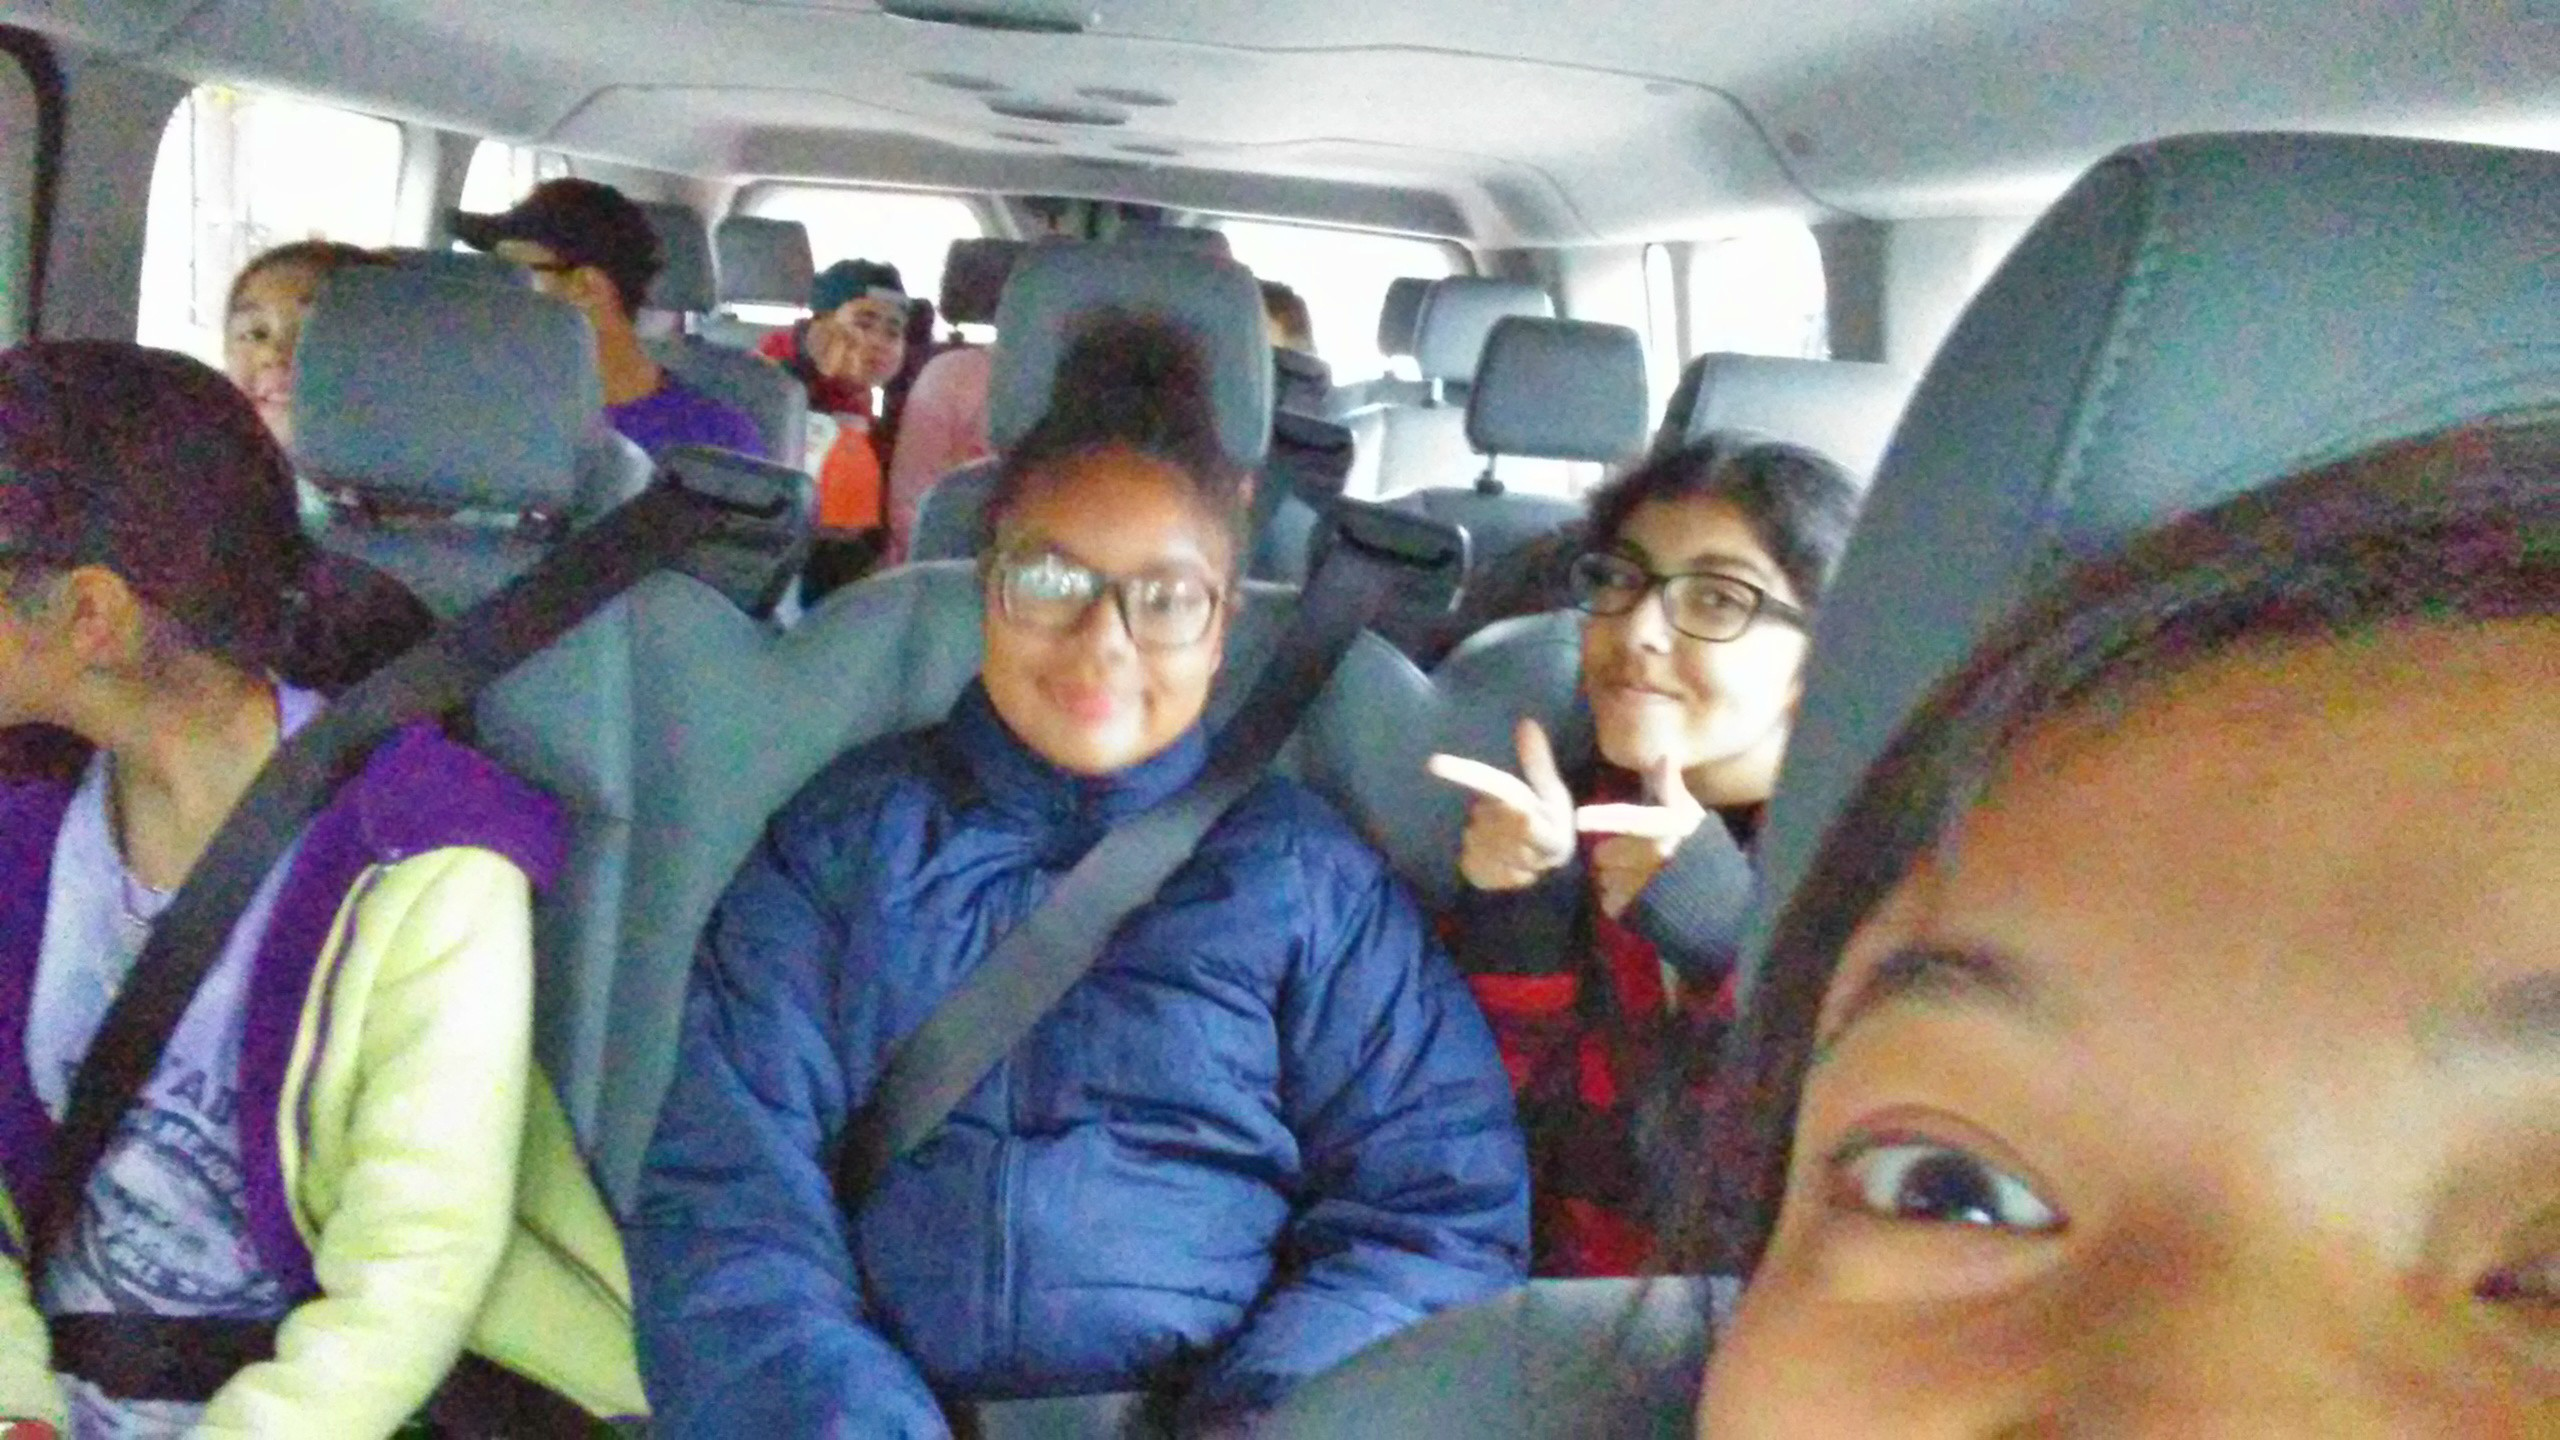 Safety first! Above is a quick selfie of all of our athletes buckled in and ready to go!